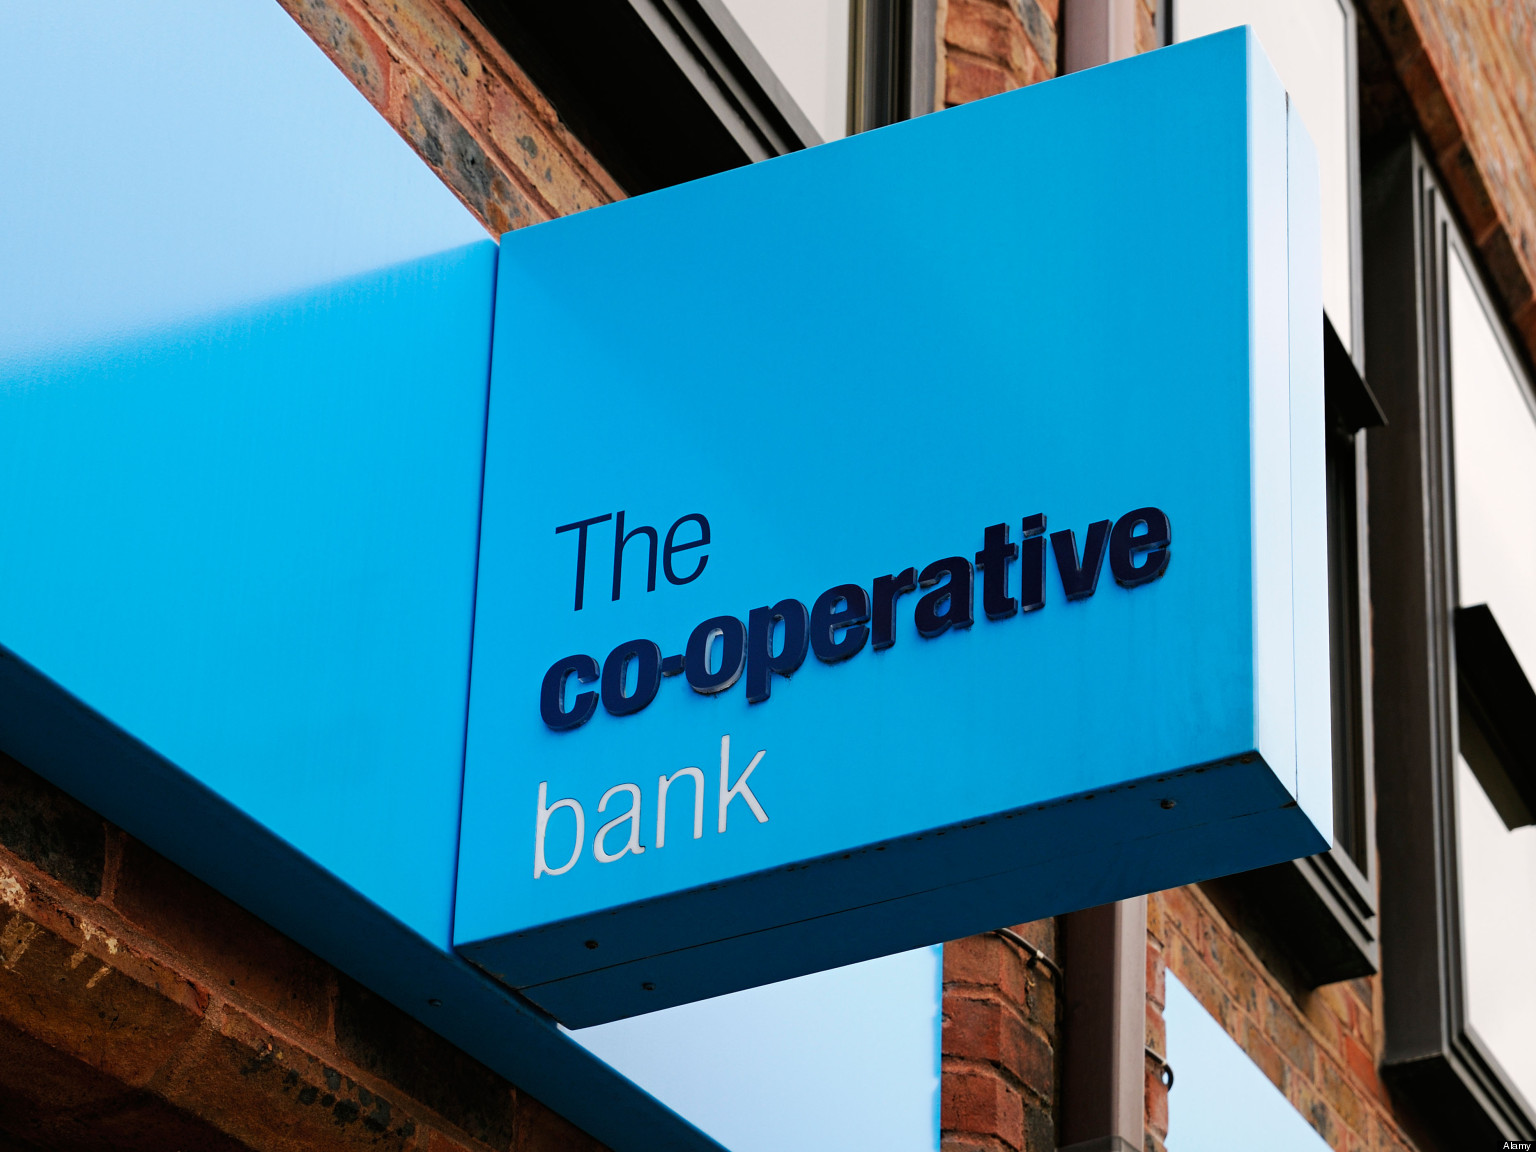 pestel co operative bank The co-operative bank brand covers the brand analysis in terms of swot, stp and competition along with the above analysis, segmentation, target group and positioning & usp are covered.